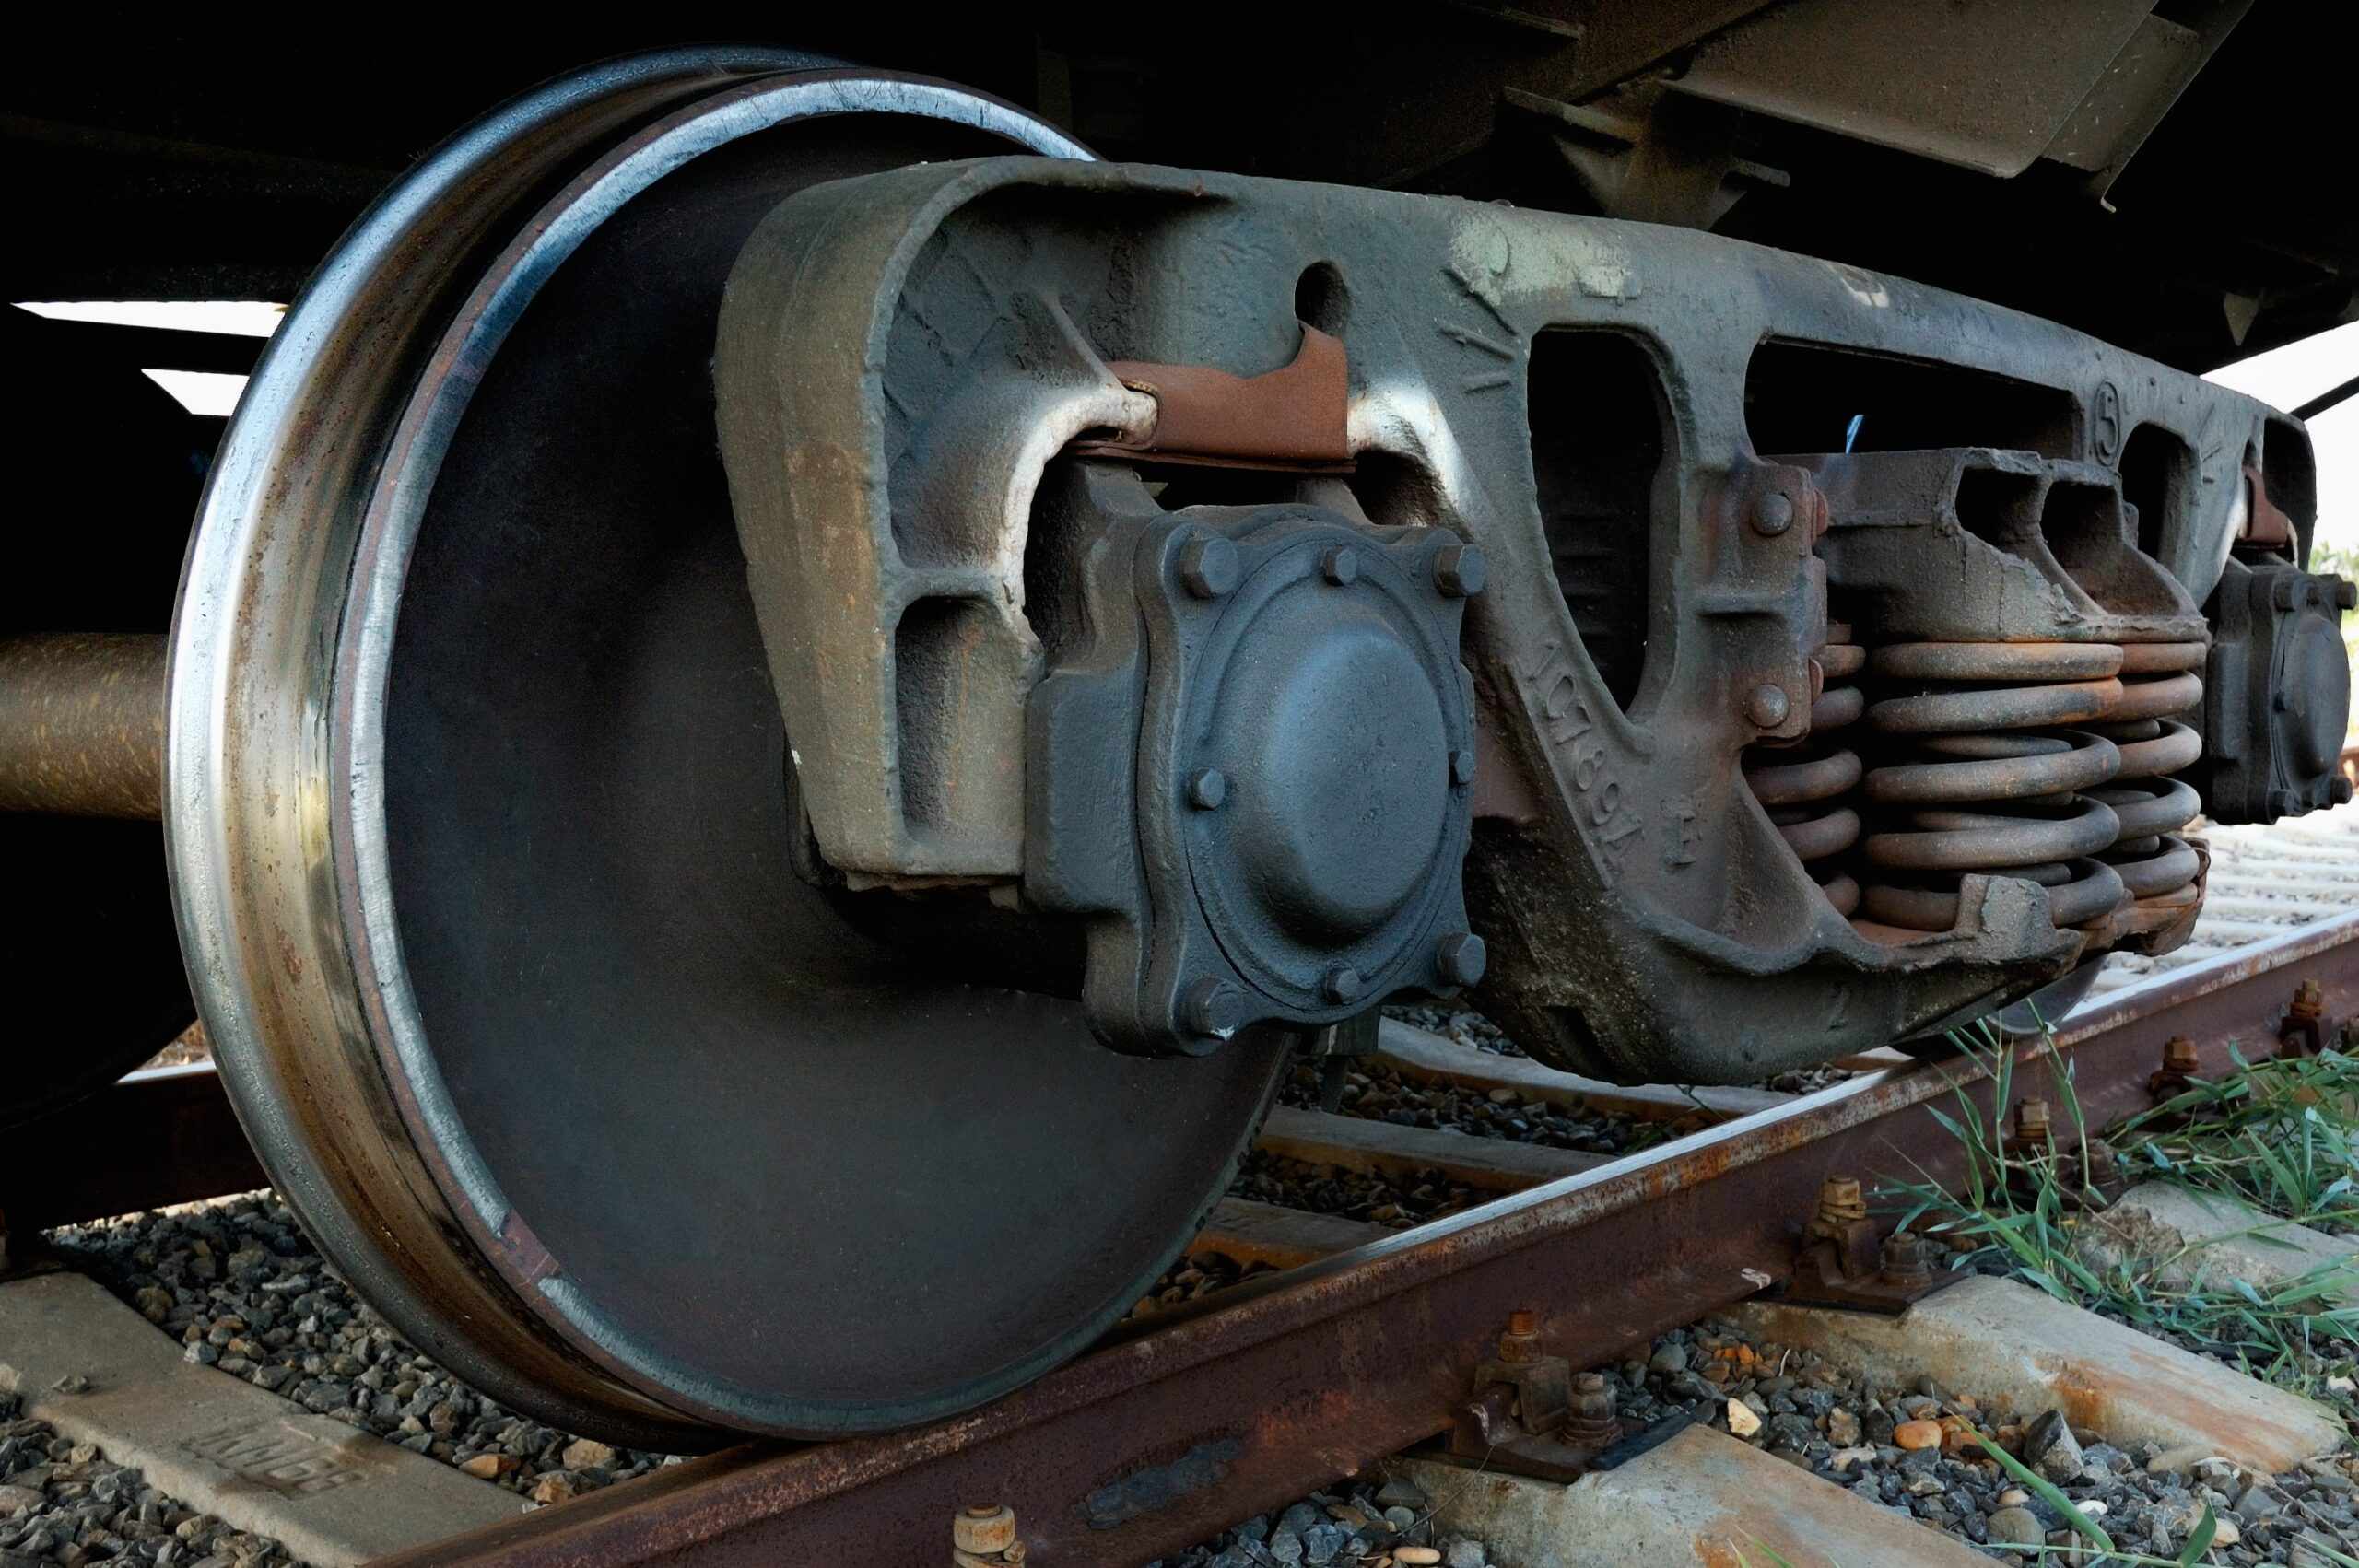 Some people find that the monotonous noise produced by train wheels on the tracks makes them sleepy; others struggle to cut out external influences of this kind in order to sleep or work in a concentrated manner.